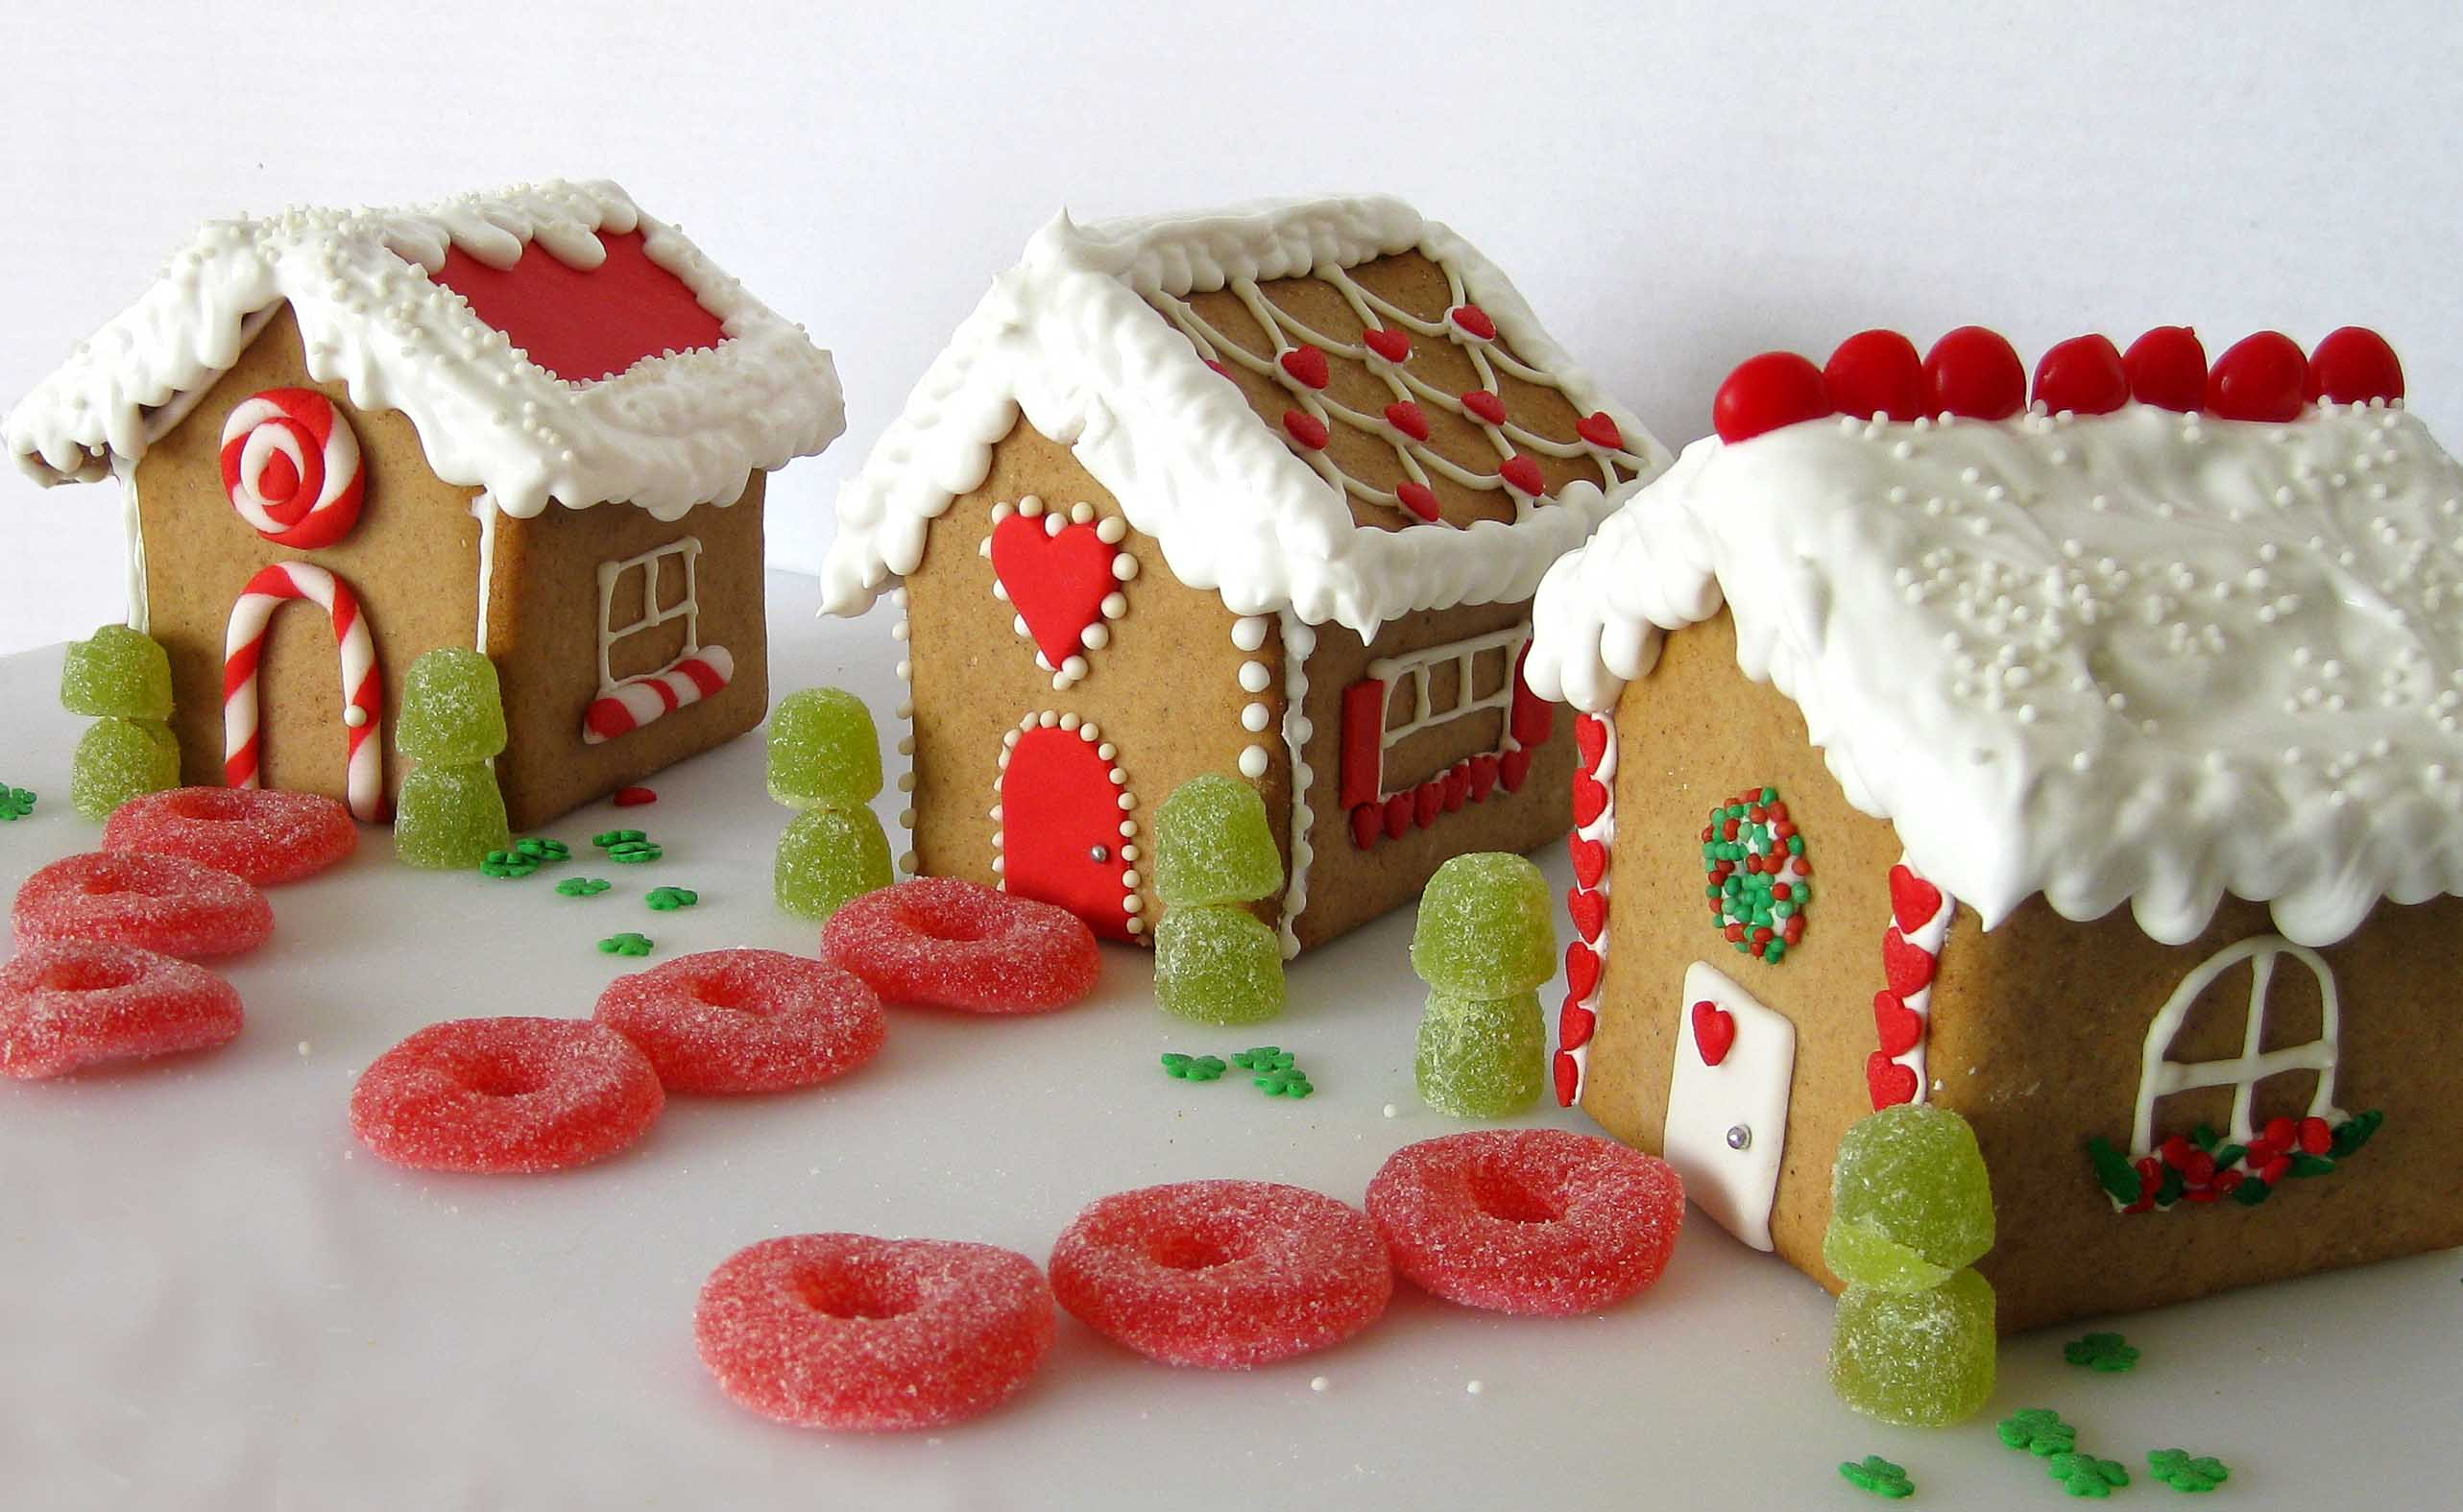 https://thecookieshop.files.wordpress.com/2009/11/gingerbread-houses.jpg